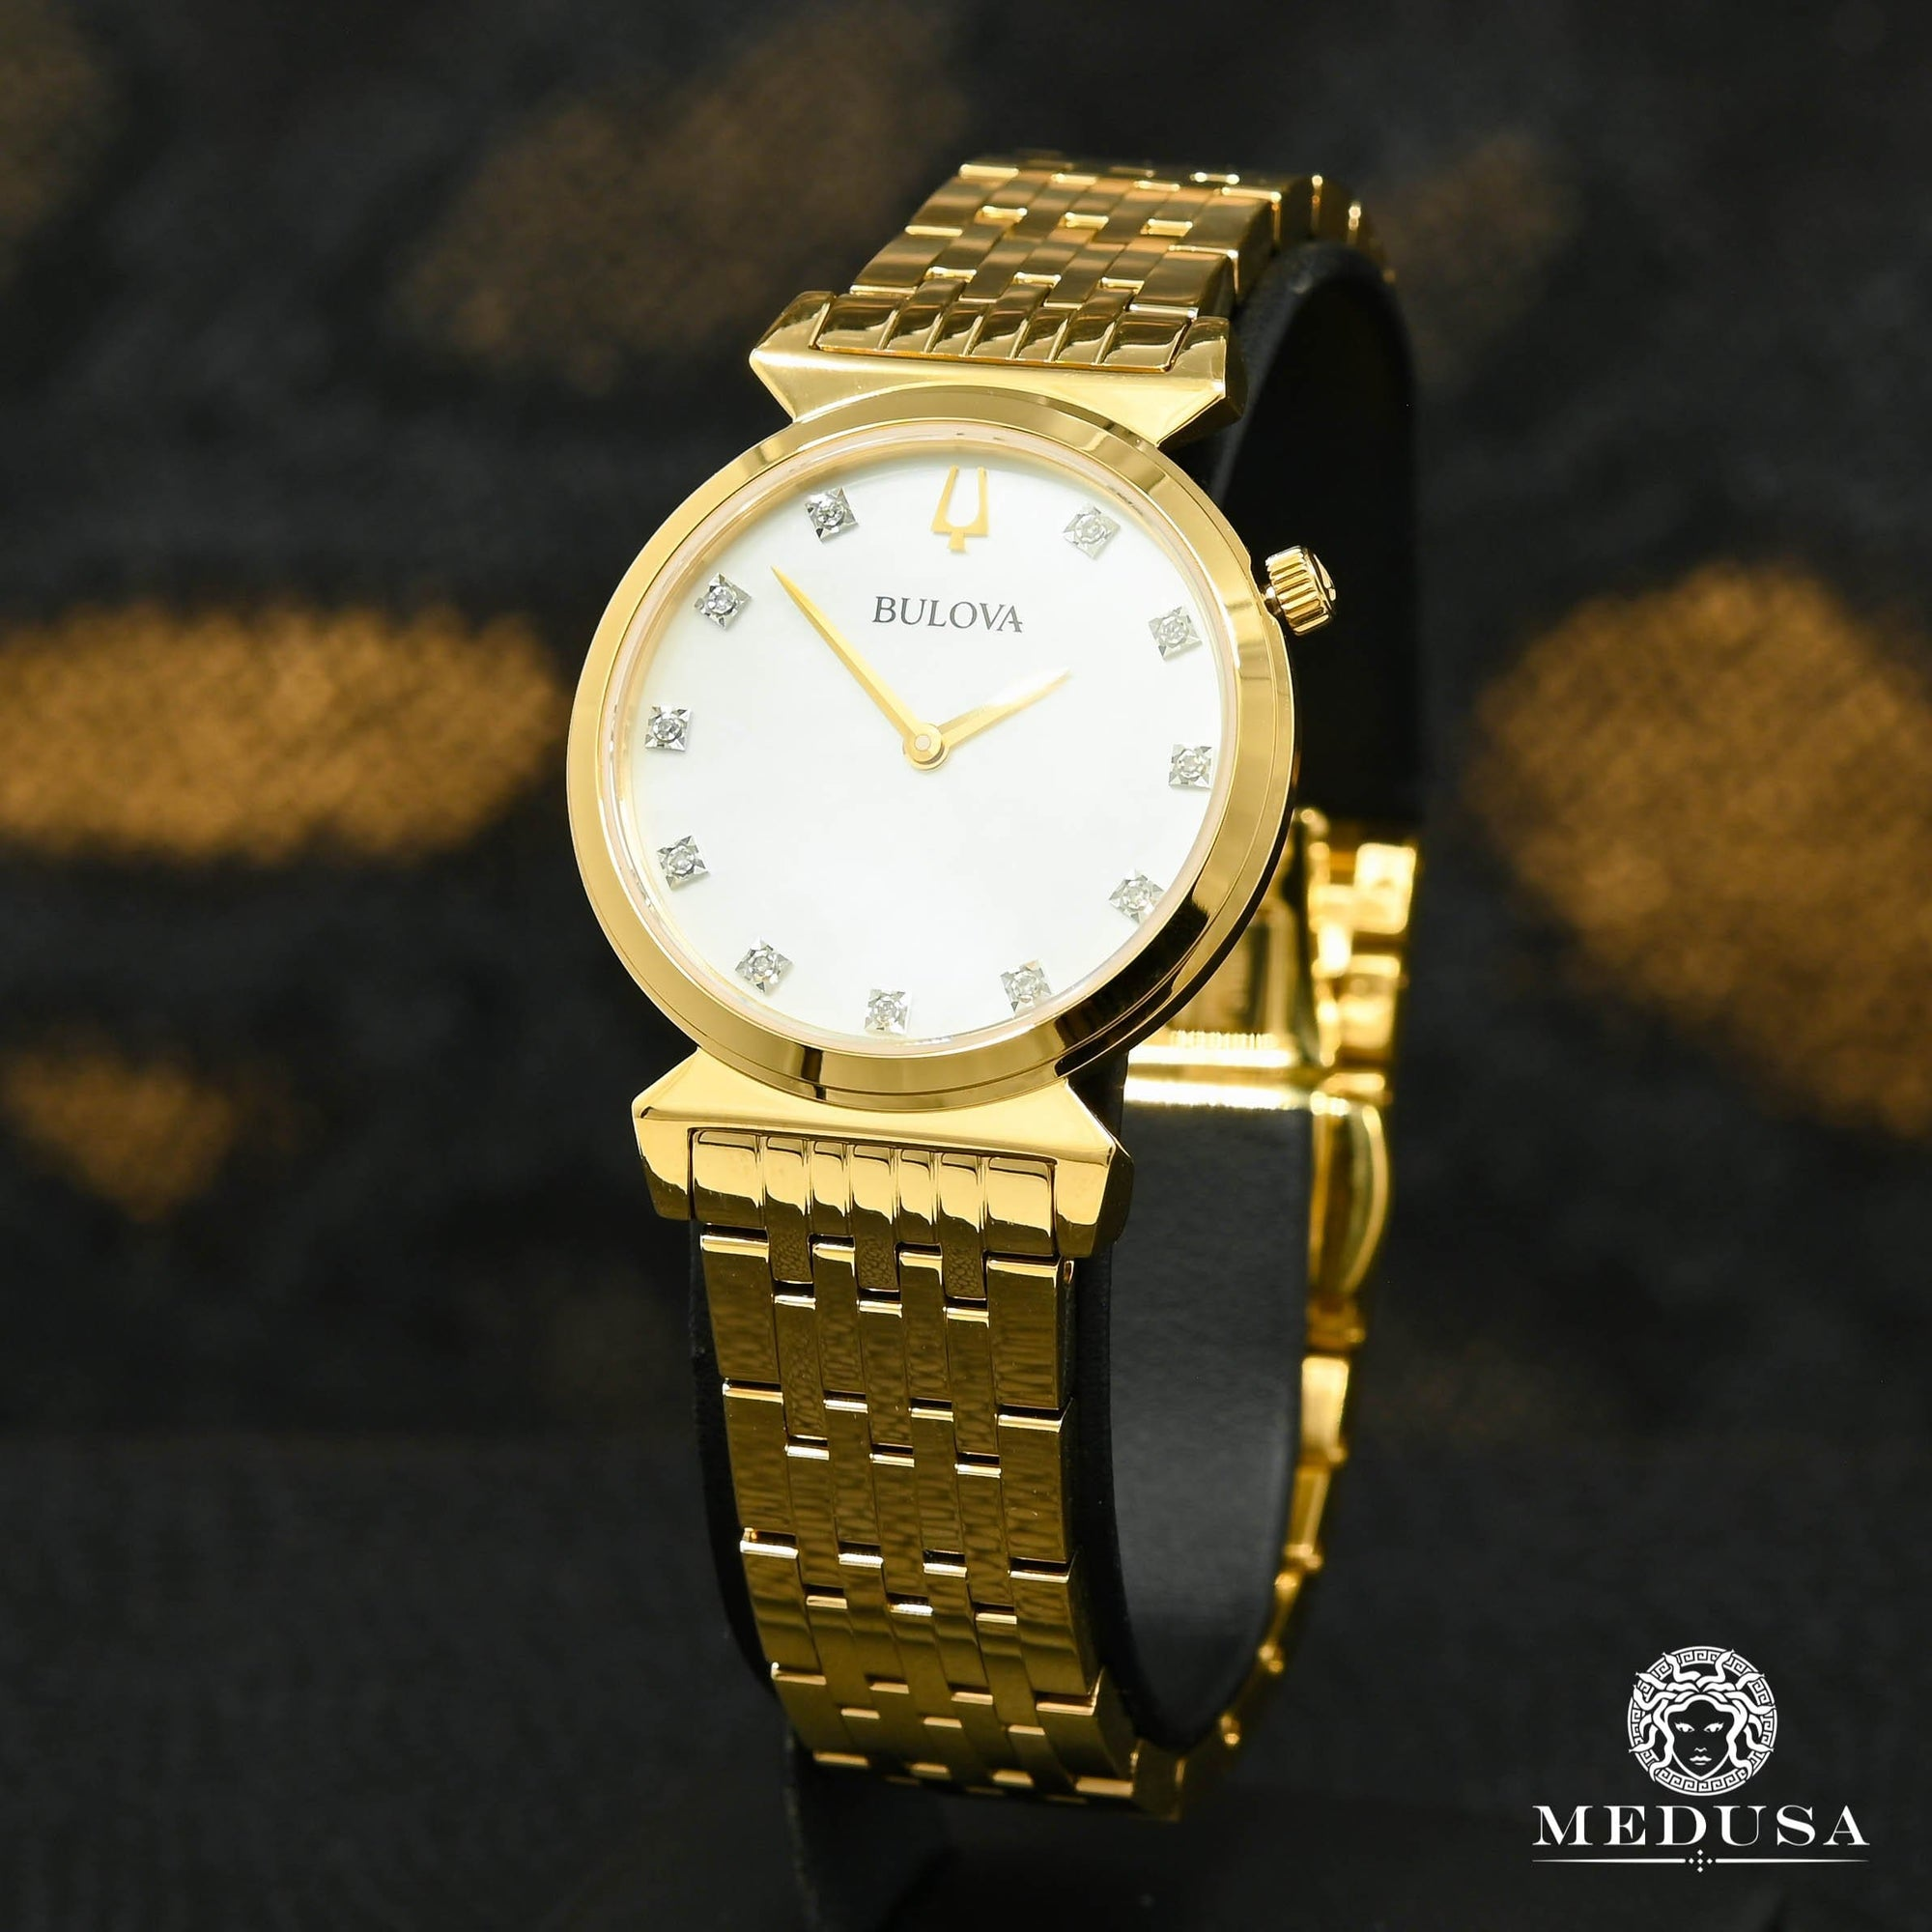 Bulova Watch | Bulova Classic Ladies Watch - 97P149 Yellow Gold